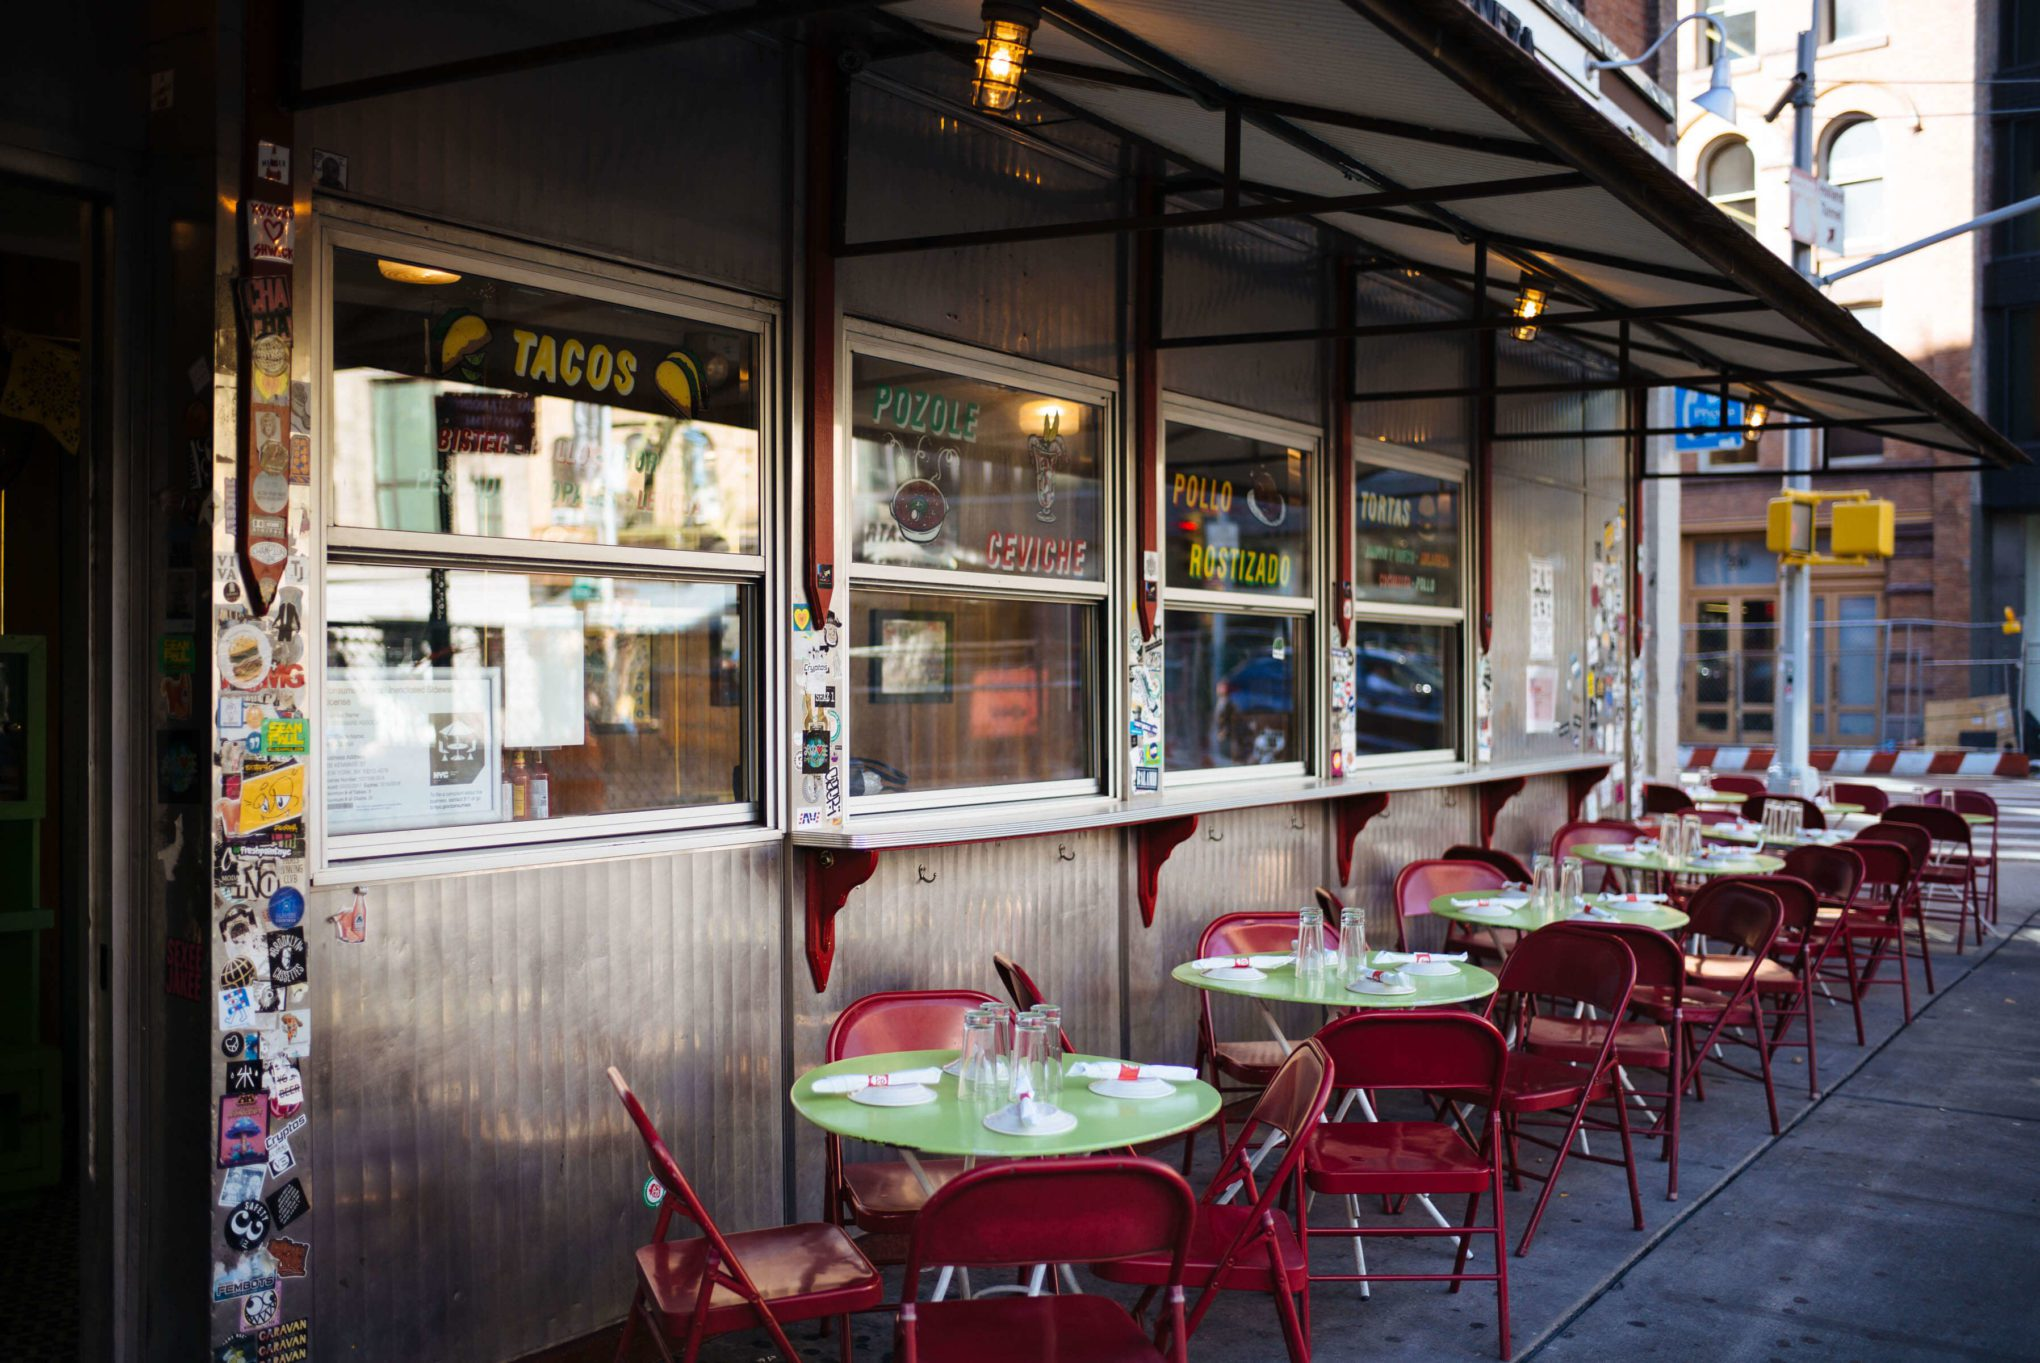 Restaurant Guide for a 24 hour travel guide New York City, The Taste SF